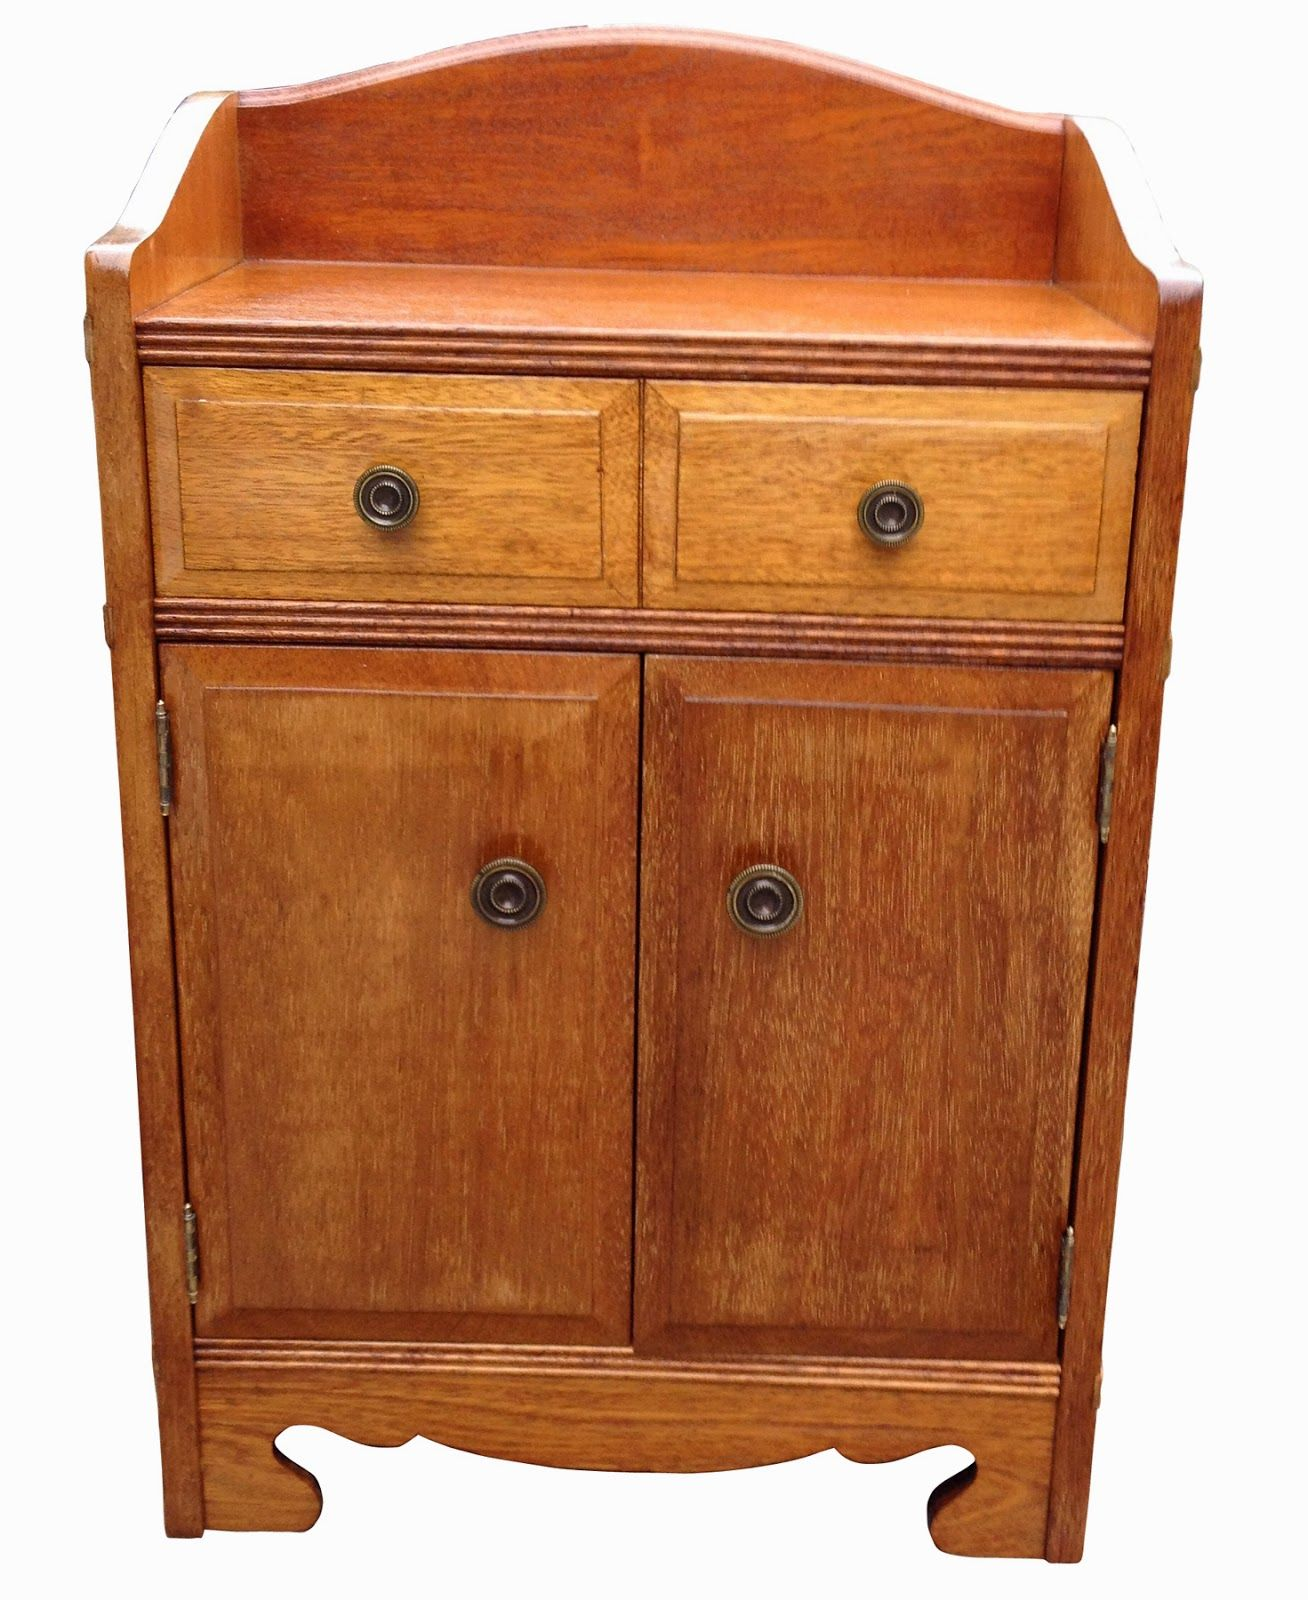 Finale Furniture Restoration Services Llc Antique Cabinet